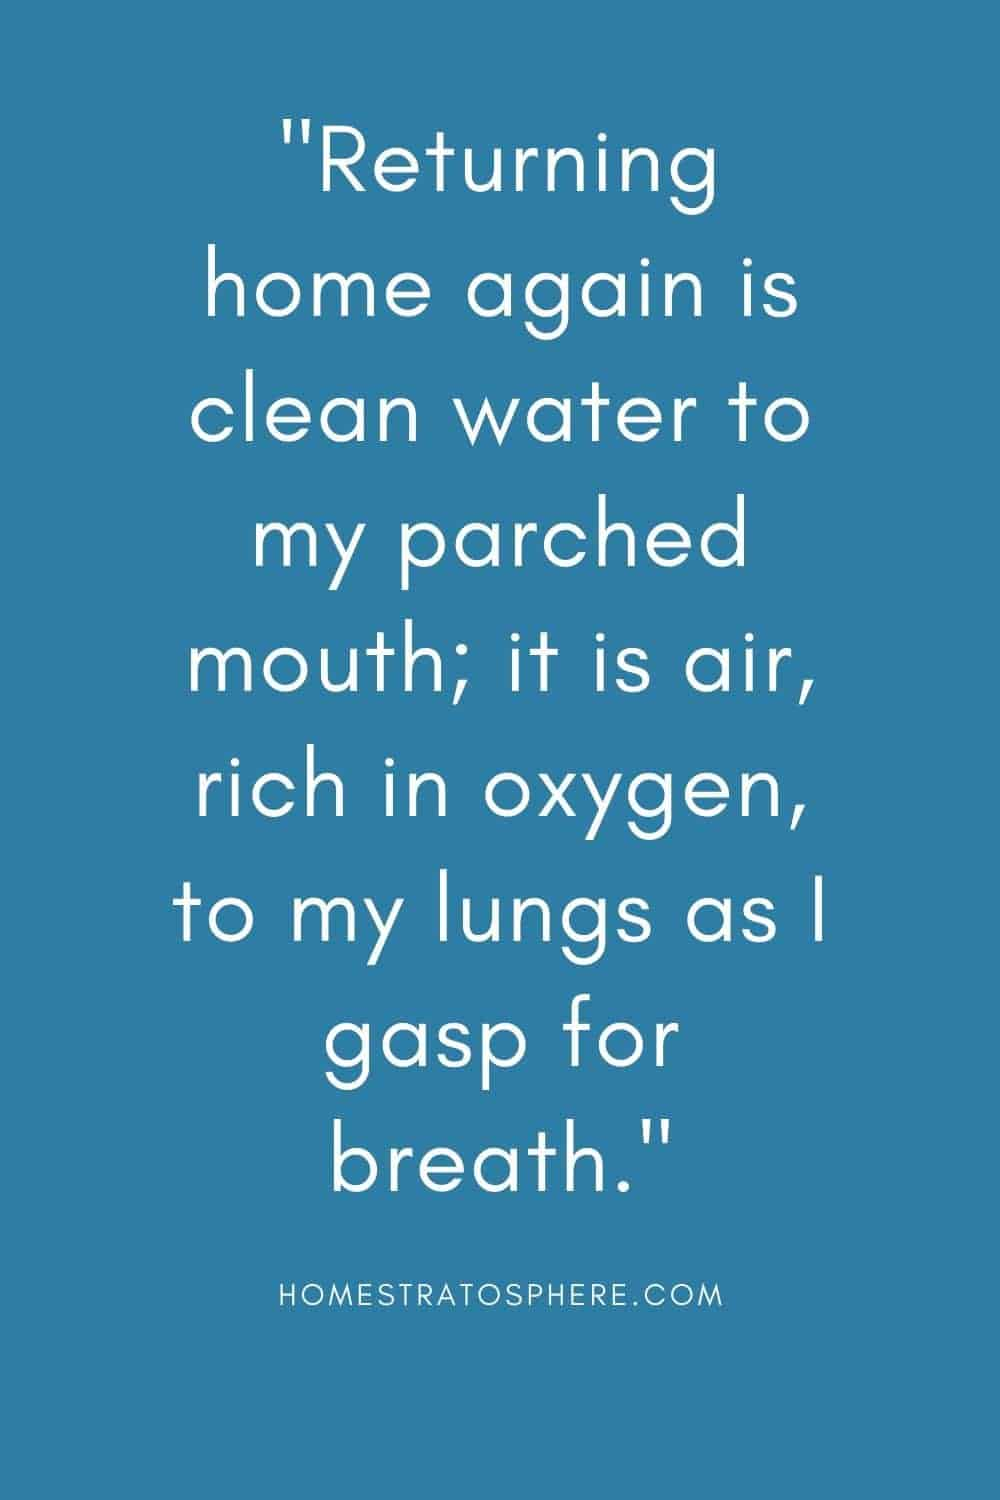 """""""Returning home again is clean water to my parched mouth; it is air, rich in oxygen, to my lungs as I gasp for breath."""""""